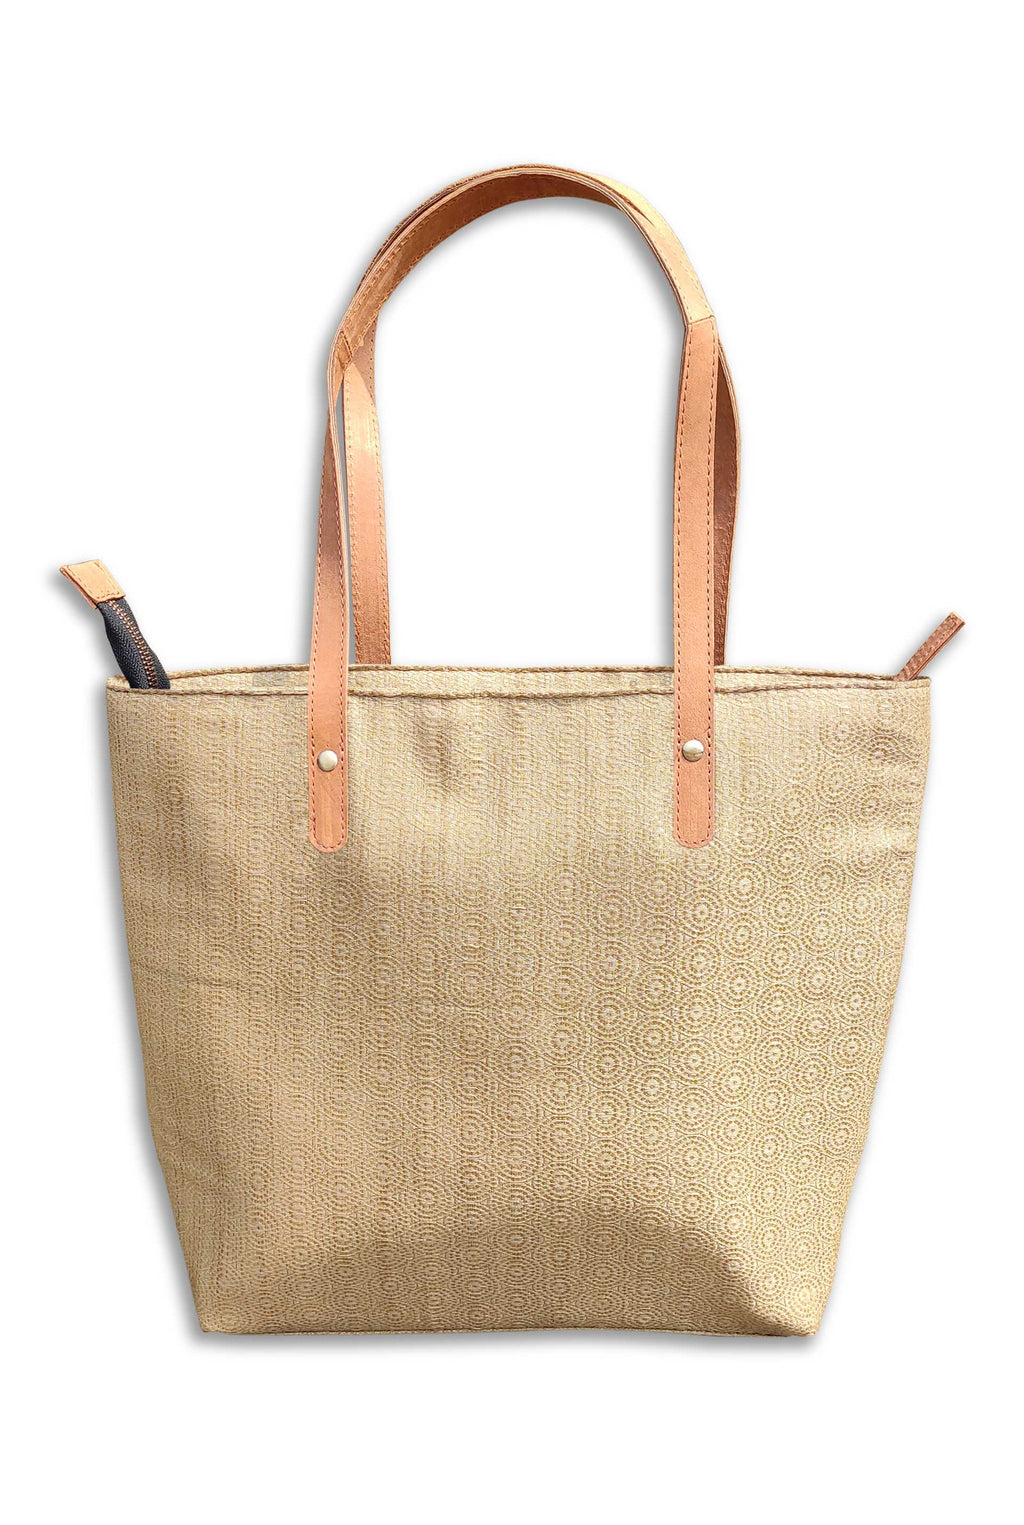 Silk Beige Tote Bag with Leather Handle